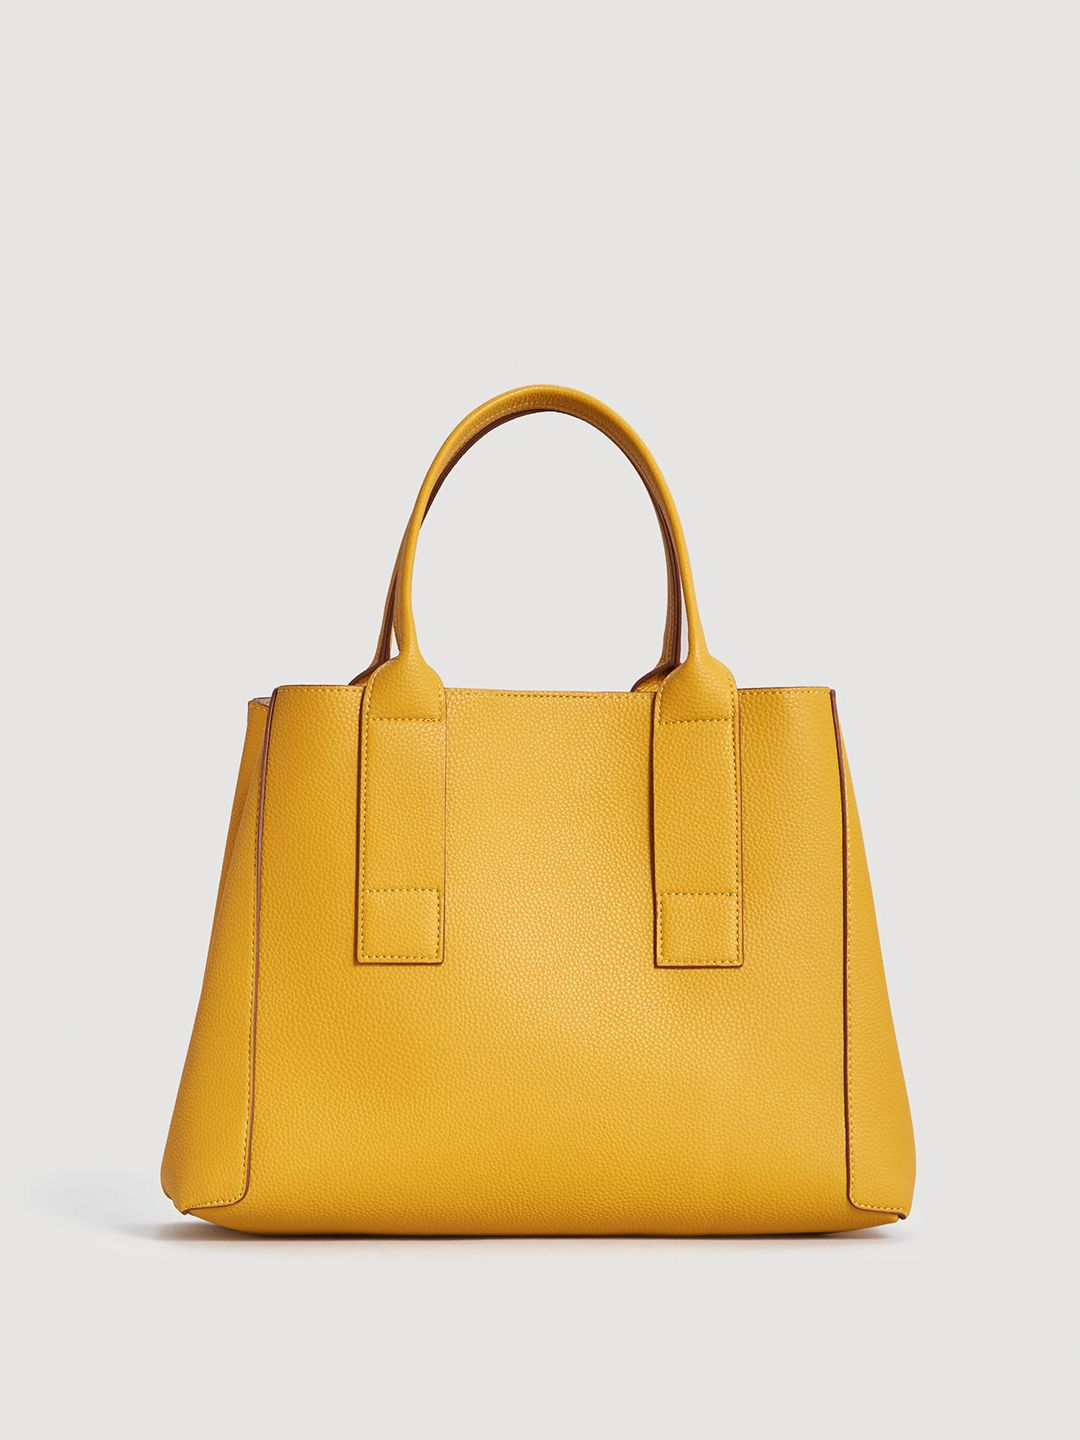 9dc1e7270c MANGO Mustard Yellow Solid Handbag #Yellow#Synthetic#Solid. MANGO Mustard  Yellow Solid Handbag #Yellow#Synthetic#Solid Leather Clutch Bags ...